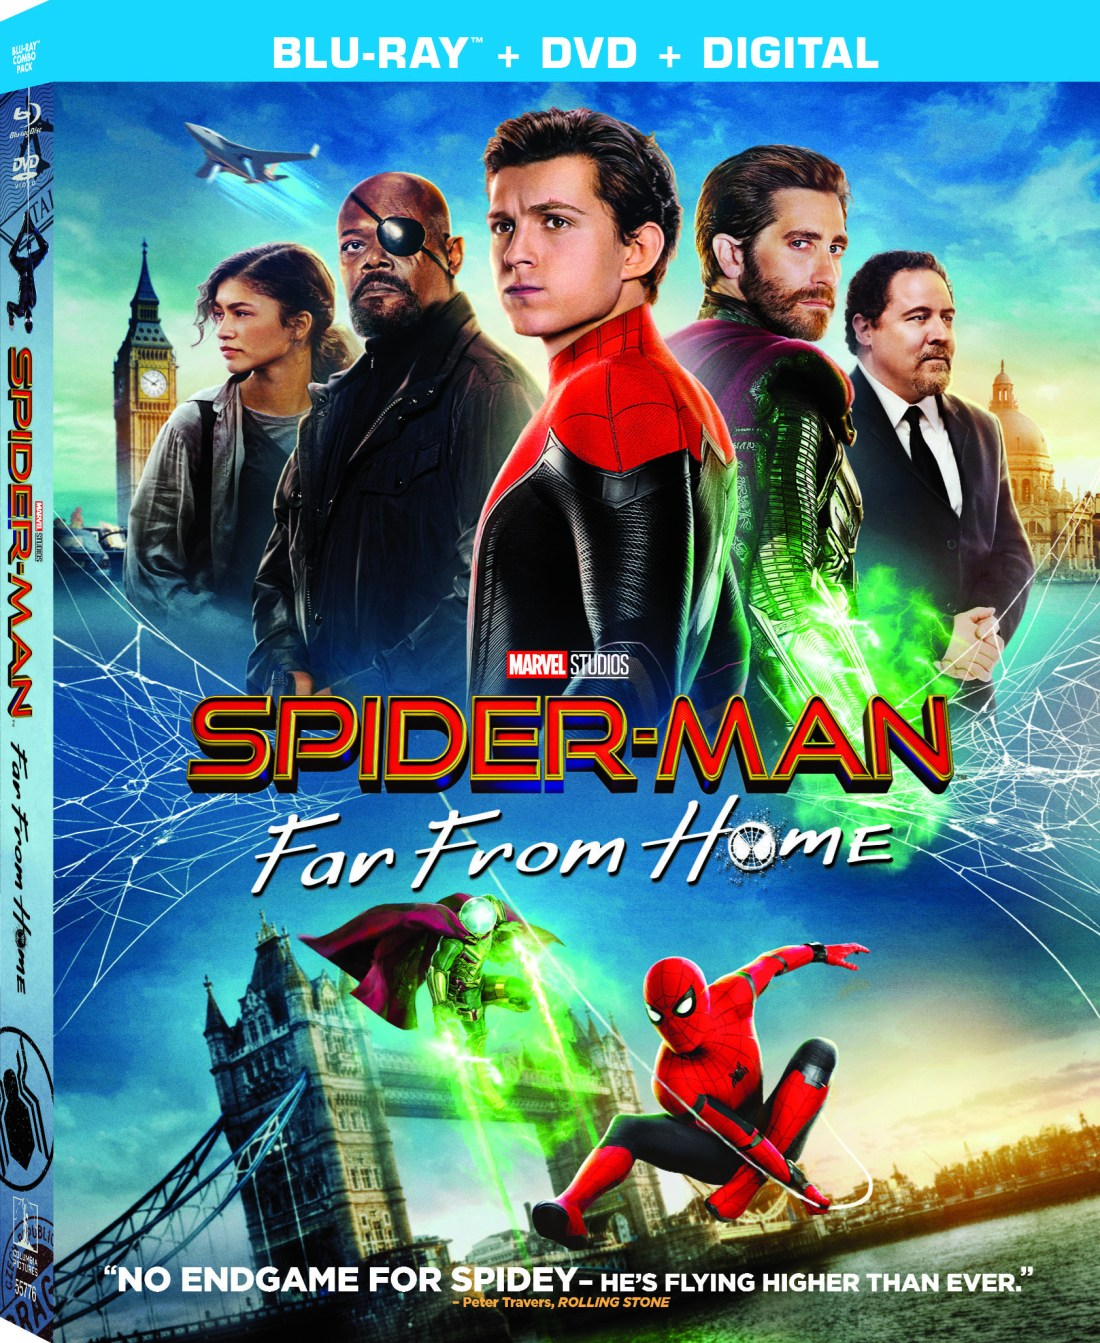 Spiderman Far From Home DVD. Tom Holland returns as everyone's favorite web-slinger in SPIDER-MAN: FAR FROM HOME, the next chapter after Spider-Man: Homecoming.